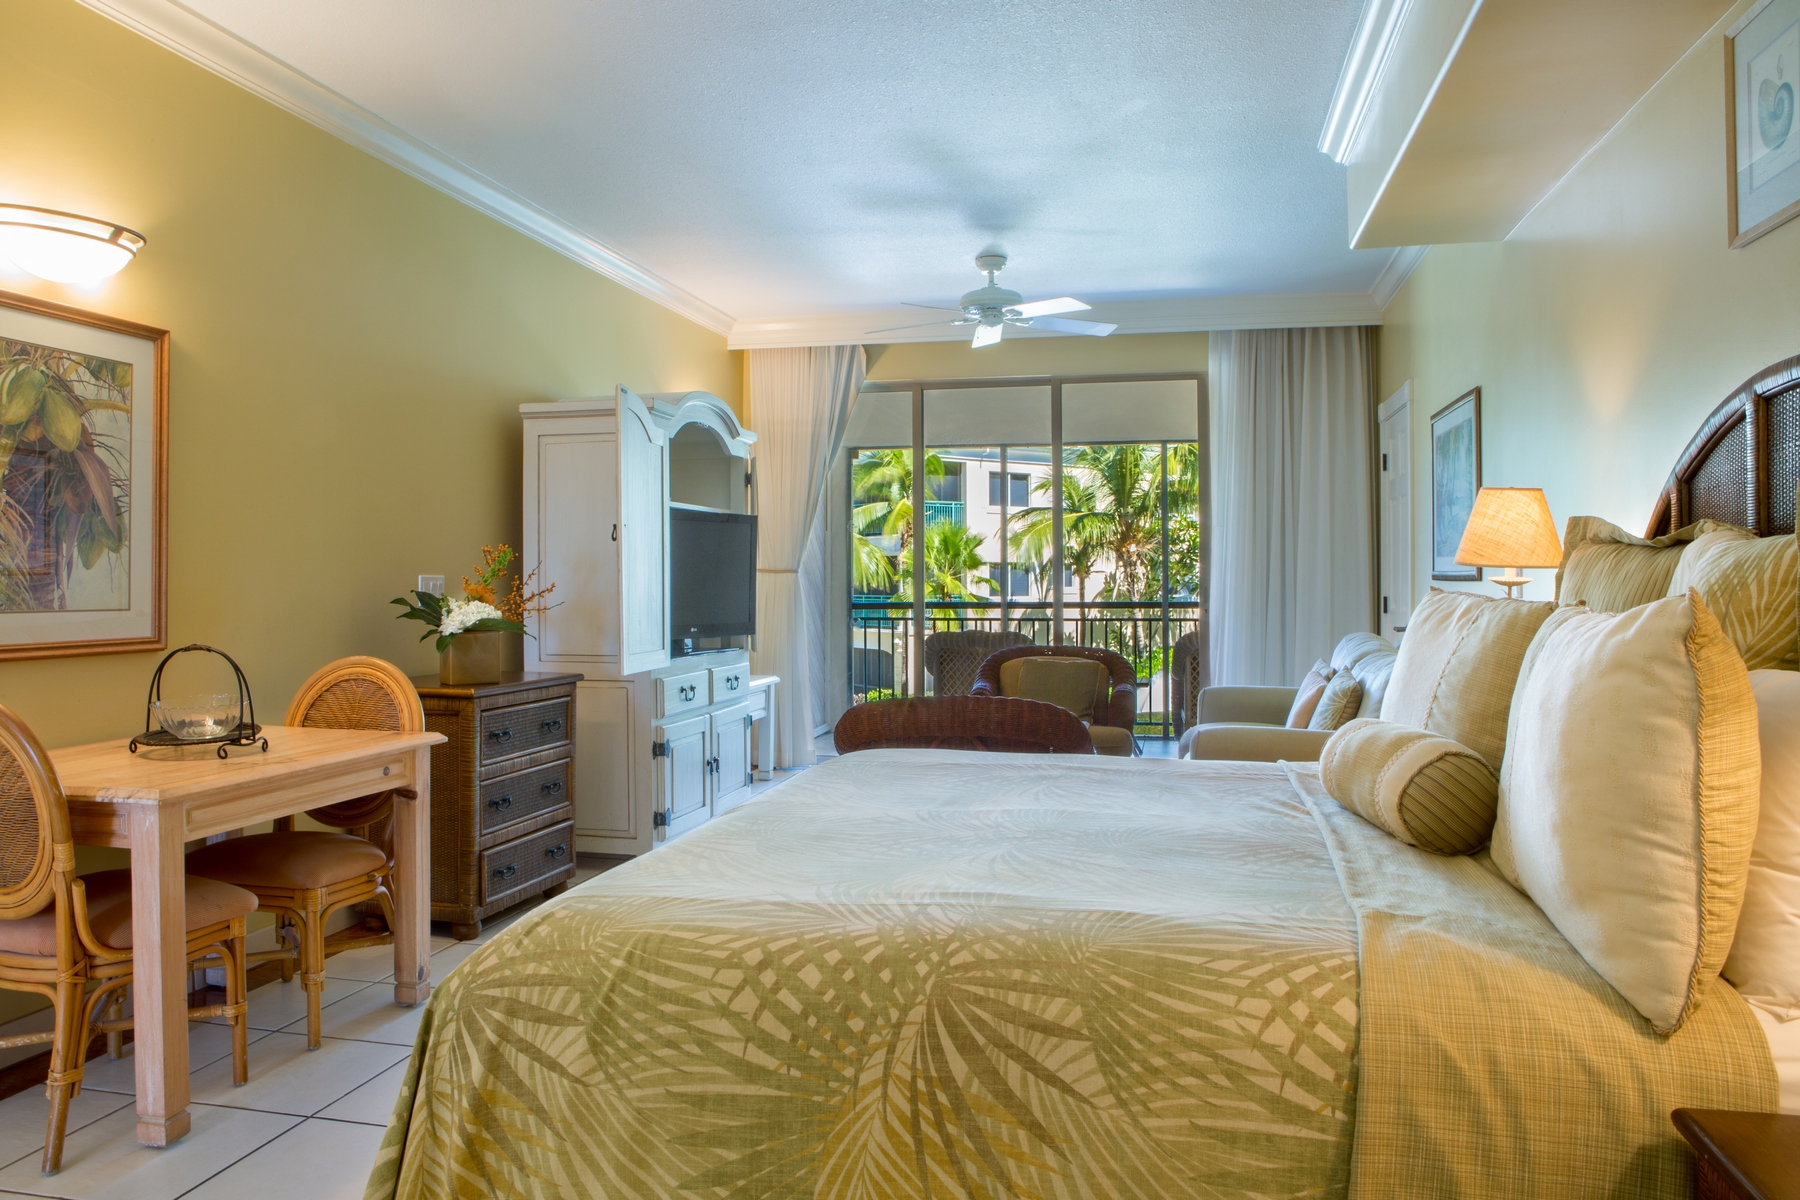 Condominium for Sale at The Sands at Grace Bay - Suite 5202 The Sands On Grace Bay, Grace Bay, Providenciales Turks And Caicos Islands